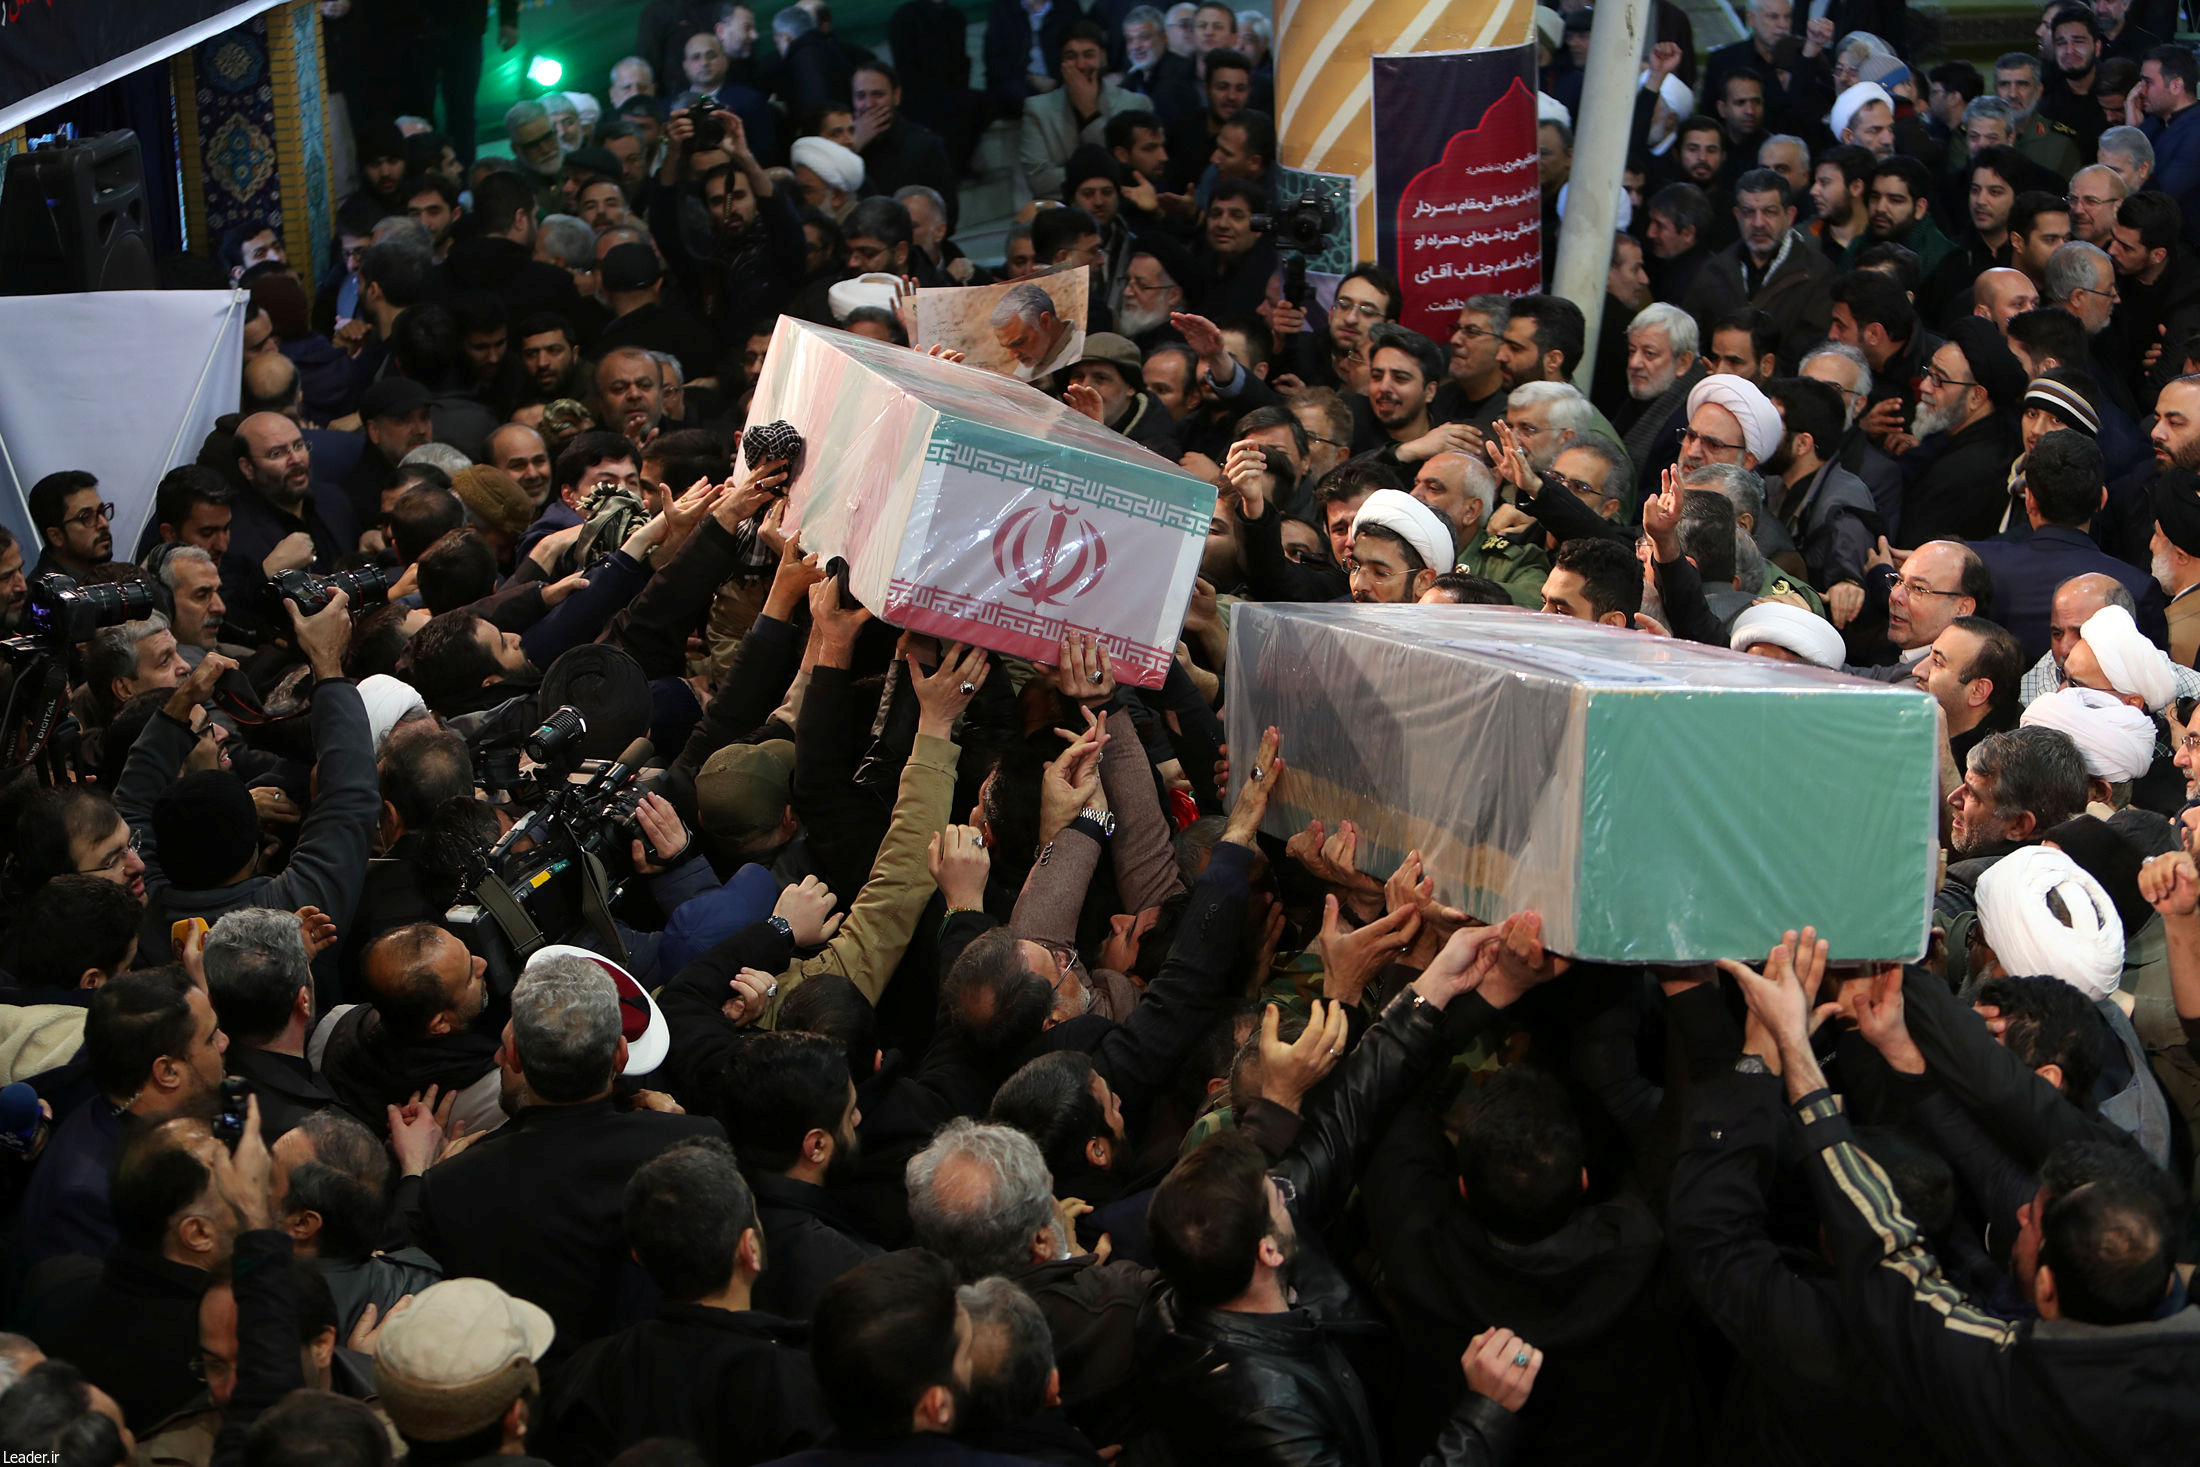 Iranian people attend a funeral for Iranian Major-General Qassem Soleimani, head of the elite Quds Force, and Iraqi militia commander Abu Mahdi al-Muhandis, who were killed in an air strike at Baghdad airport, in Tehran, Iran Jan. 6, 2020. Official Khamenei website/Handout via REUTERS